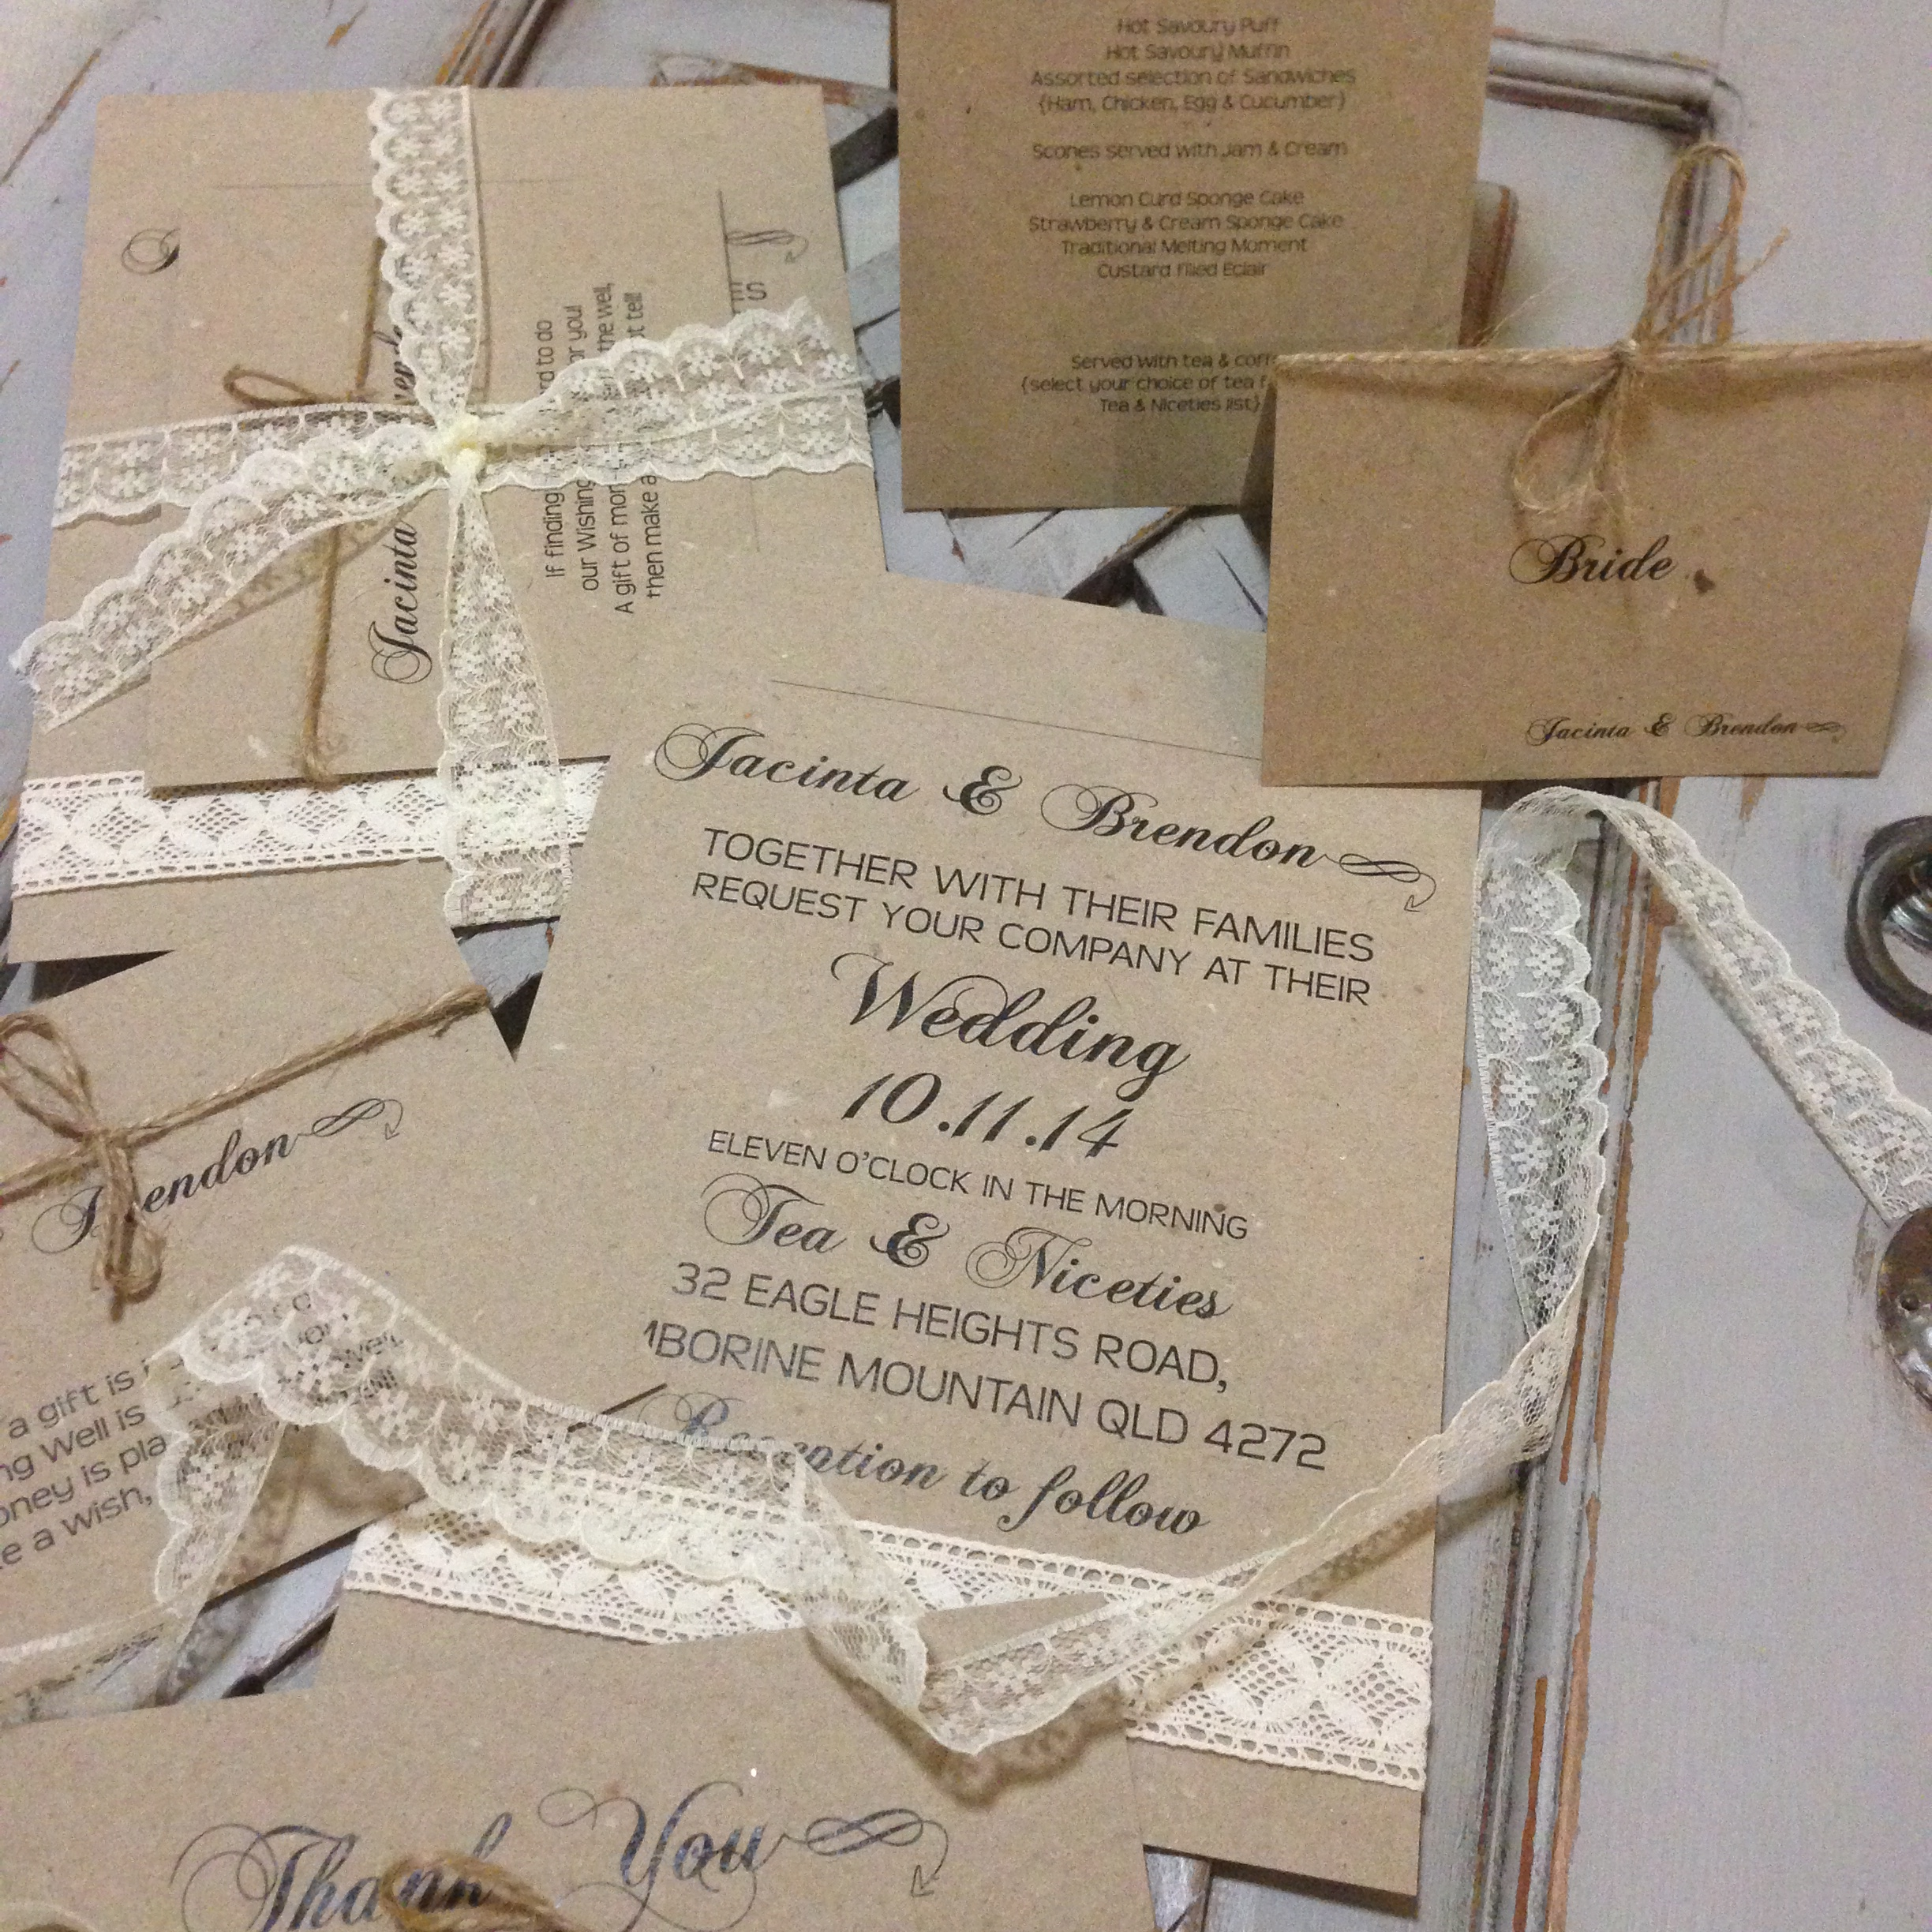 DESIGN & PRODUCTION OF BESPOKE WEDDING STATIONERY